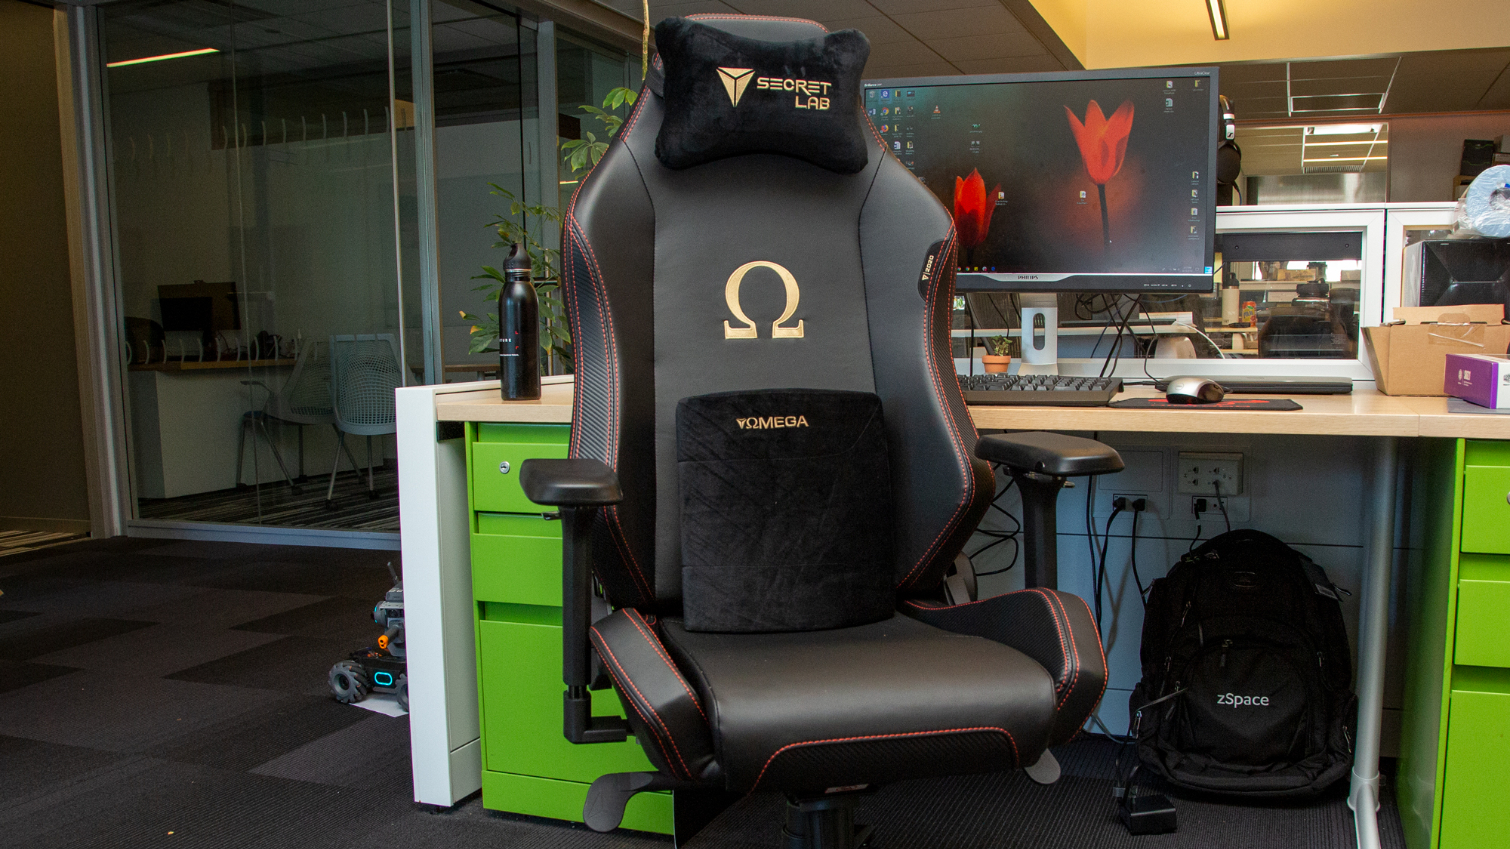 Marvelous Secretlab Omega 2020 Gaming Chair Review All Day Comfort Onthecornerstone Fun Painted Chair Ideas Images Onthecornerstoneorg